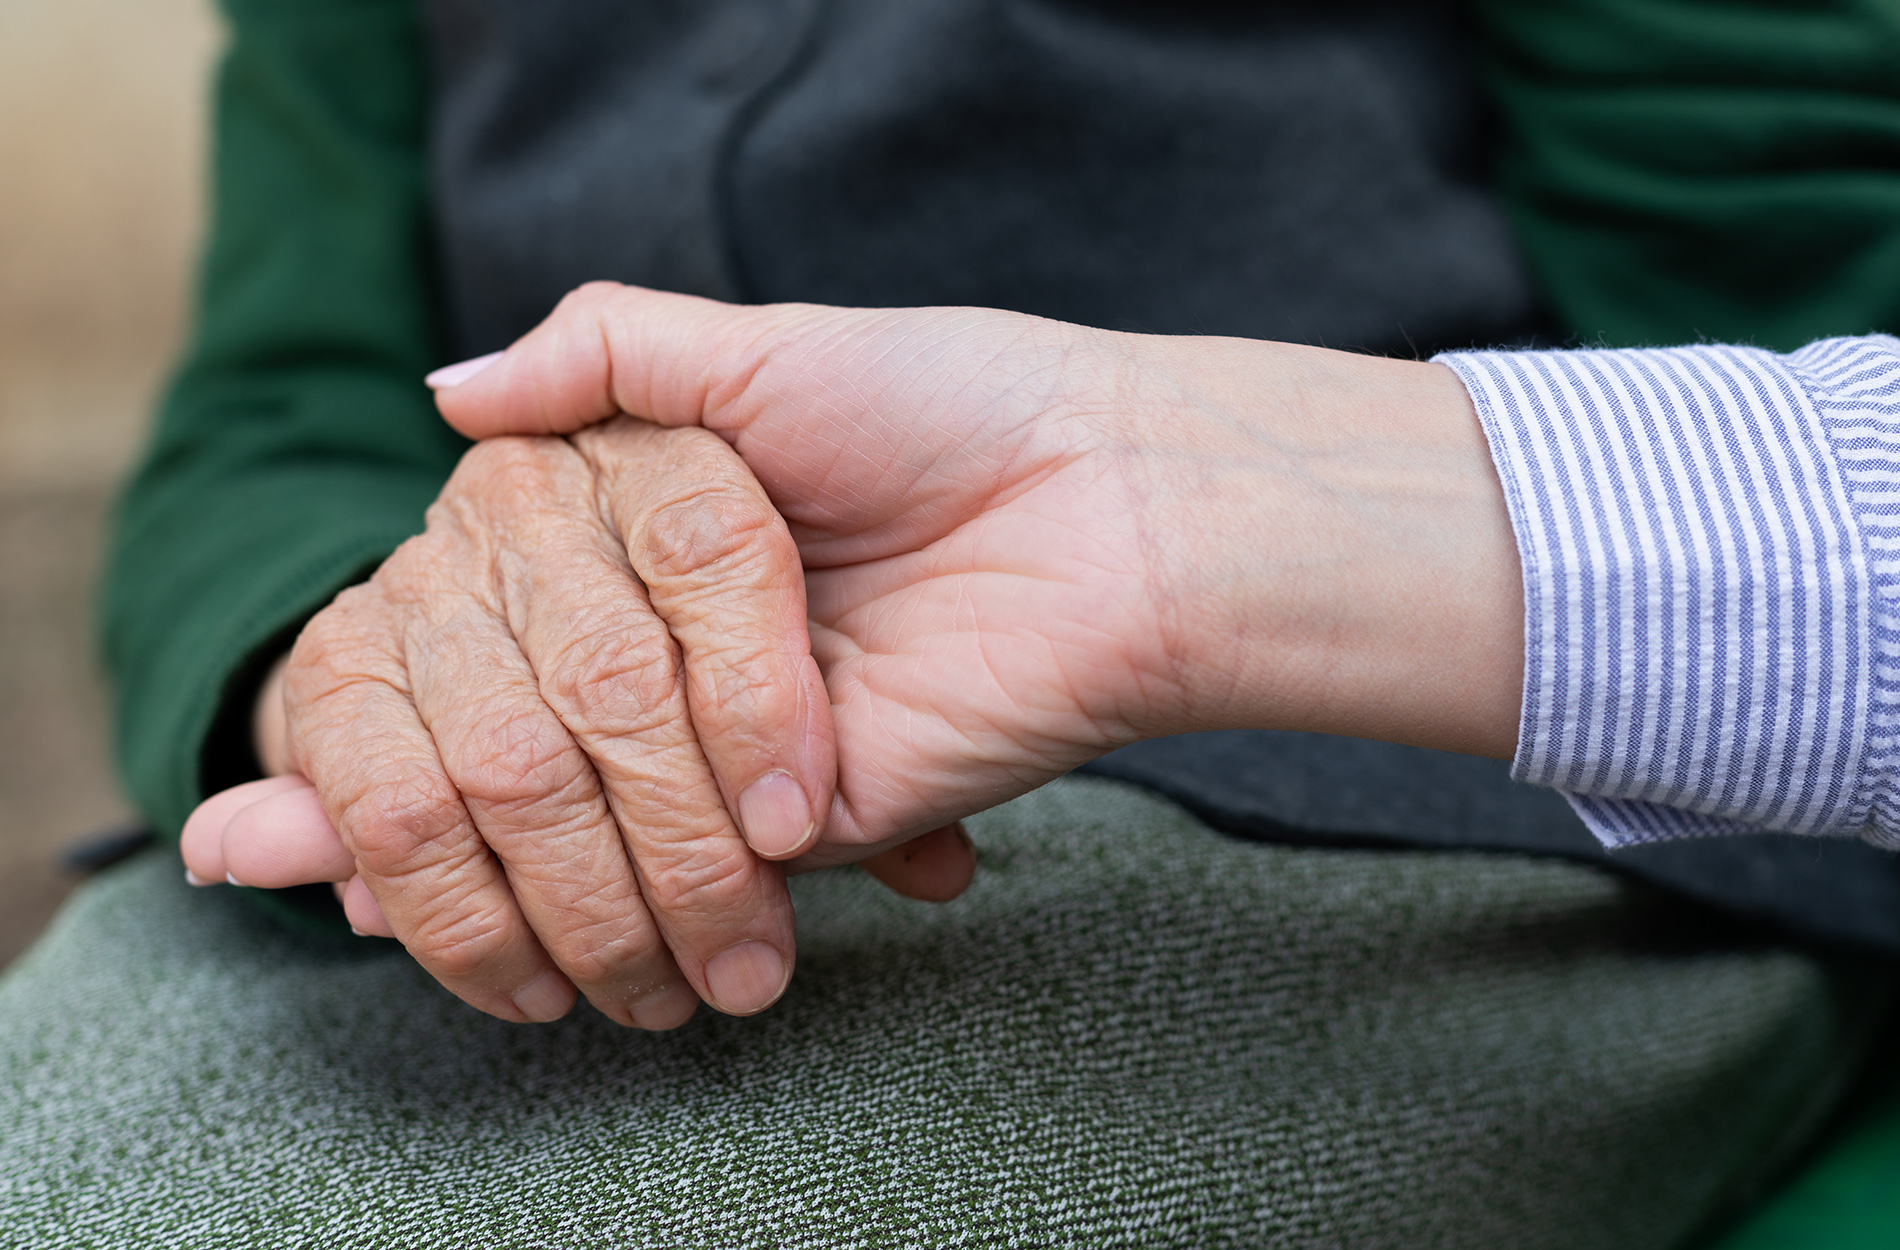 Young hand touching elderly hands